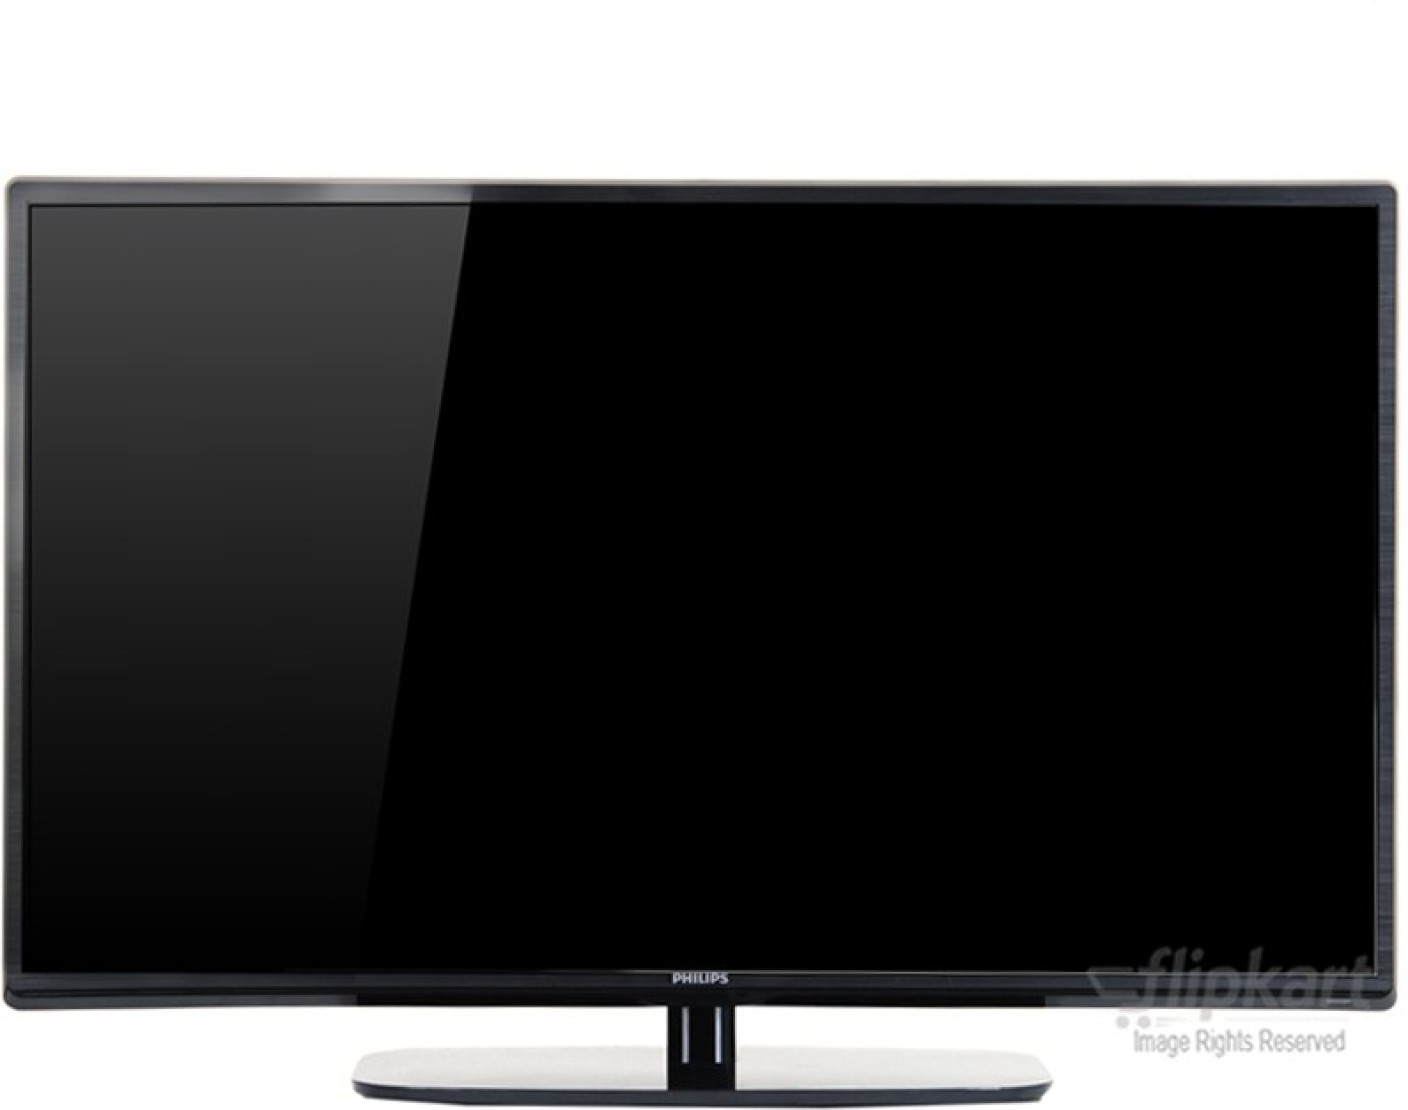 philips 98 cm 39 inch full hd led tv online at best. Black Bedroom Furniture Sets. Home Design Ideas